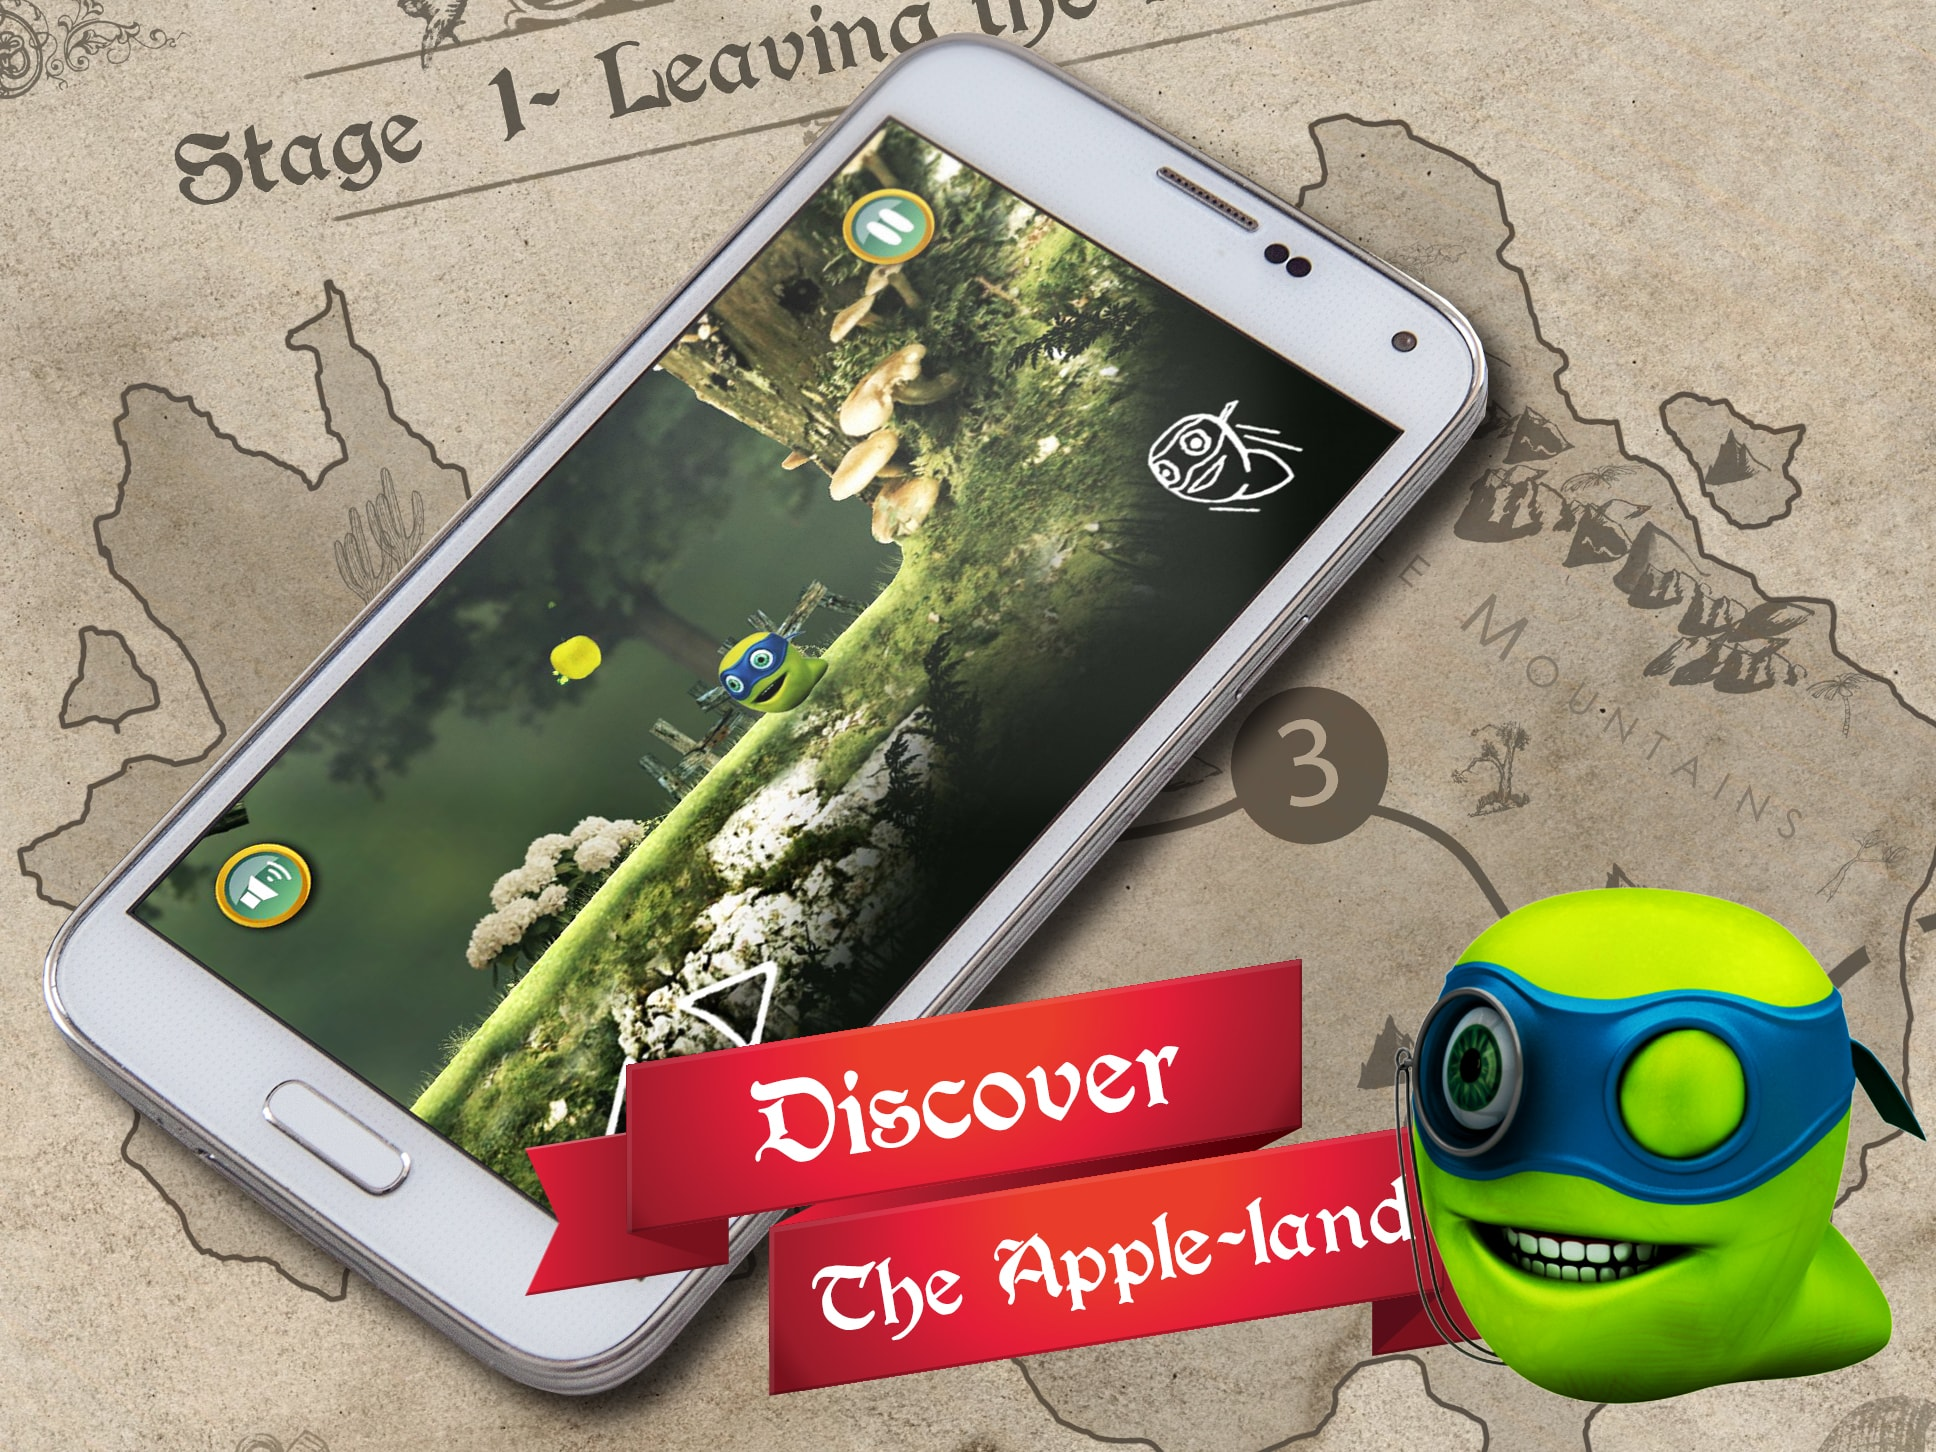 Discover the Apple-Land